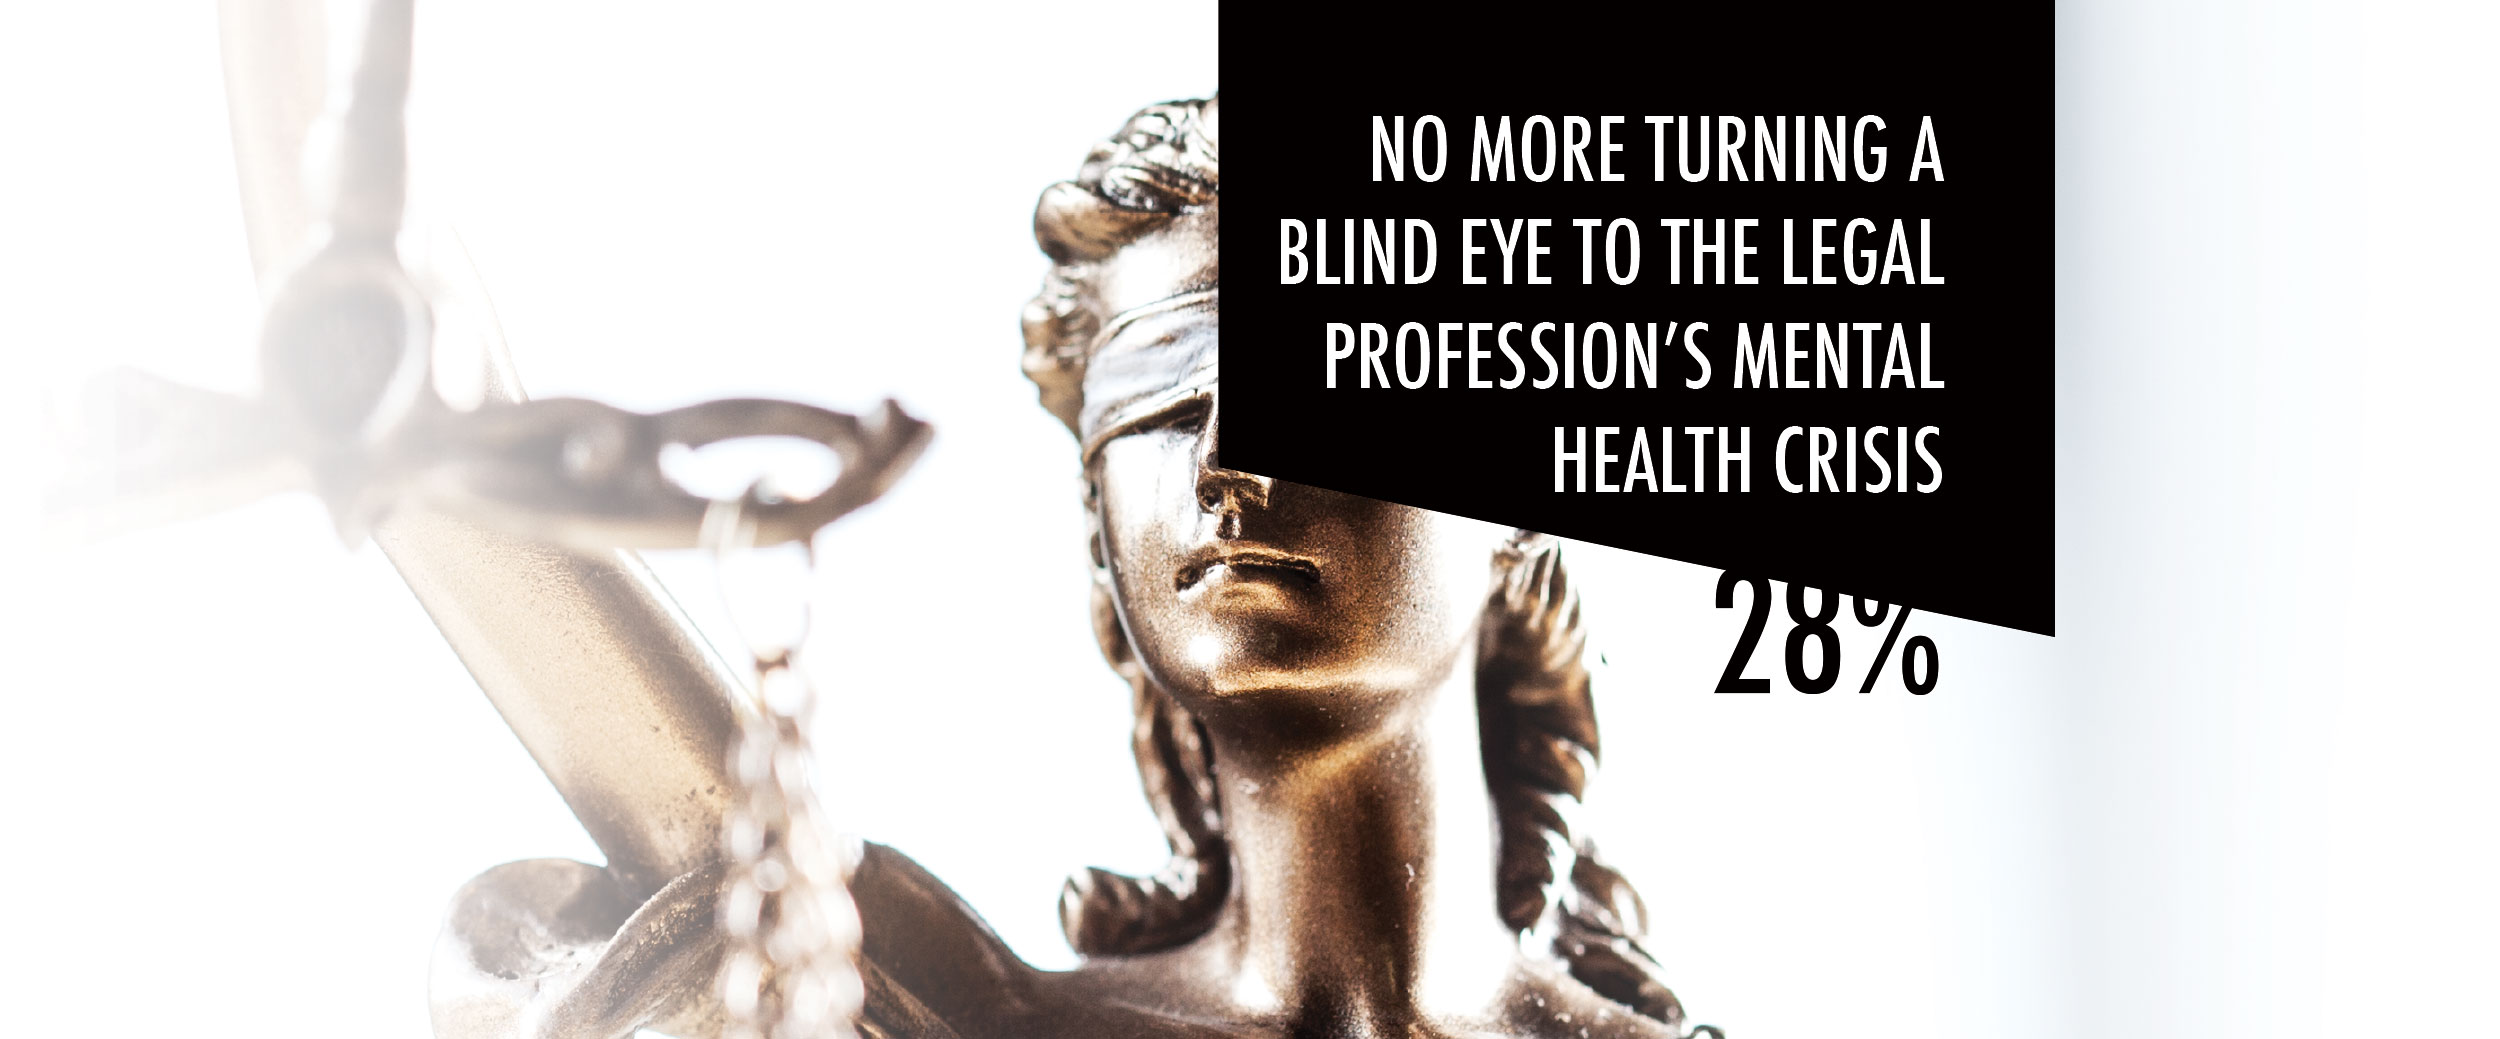 NO MORE TURNING A BLIND EYE TO THE LEGAL PROFESSION'S MENTAL HEALTH CRISIS